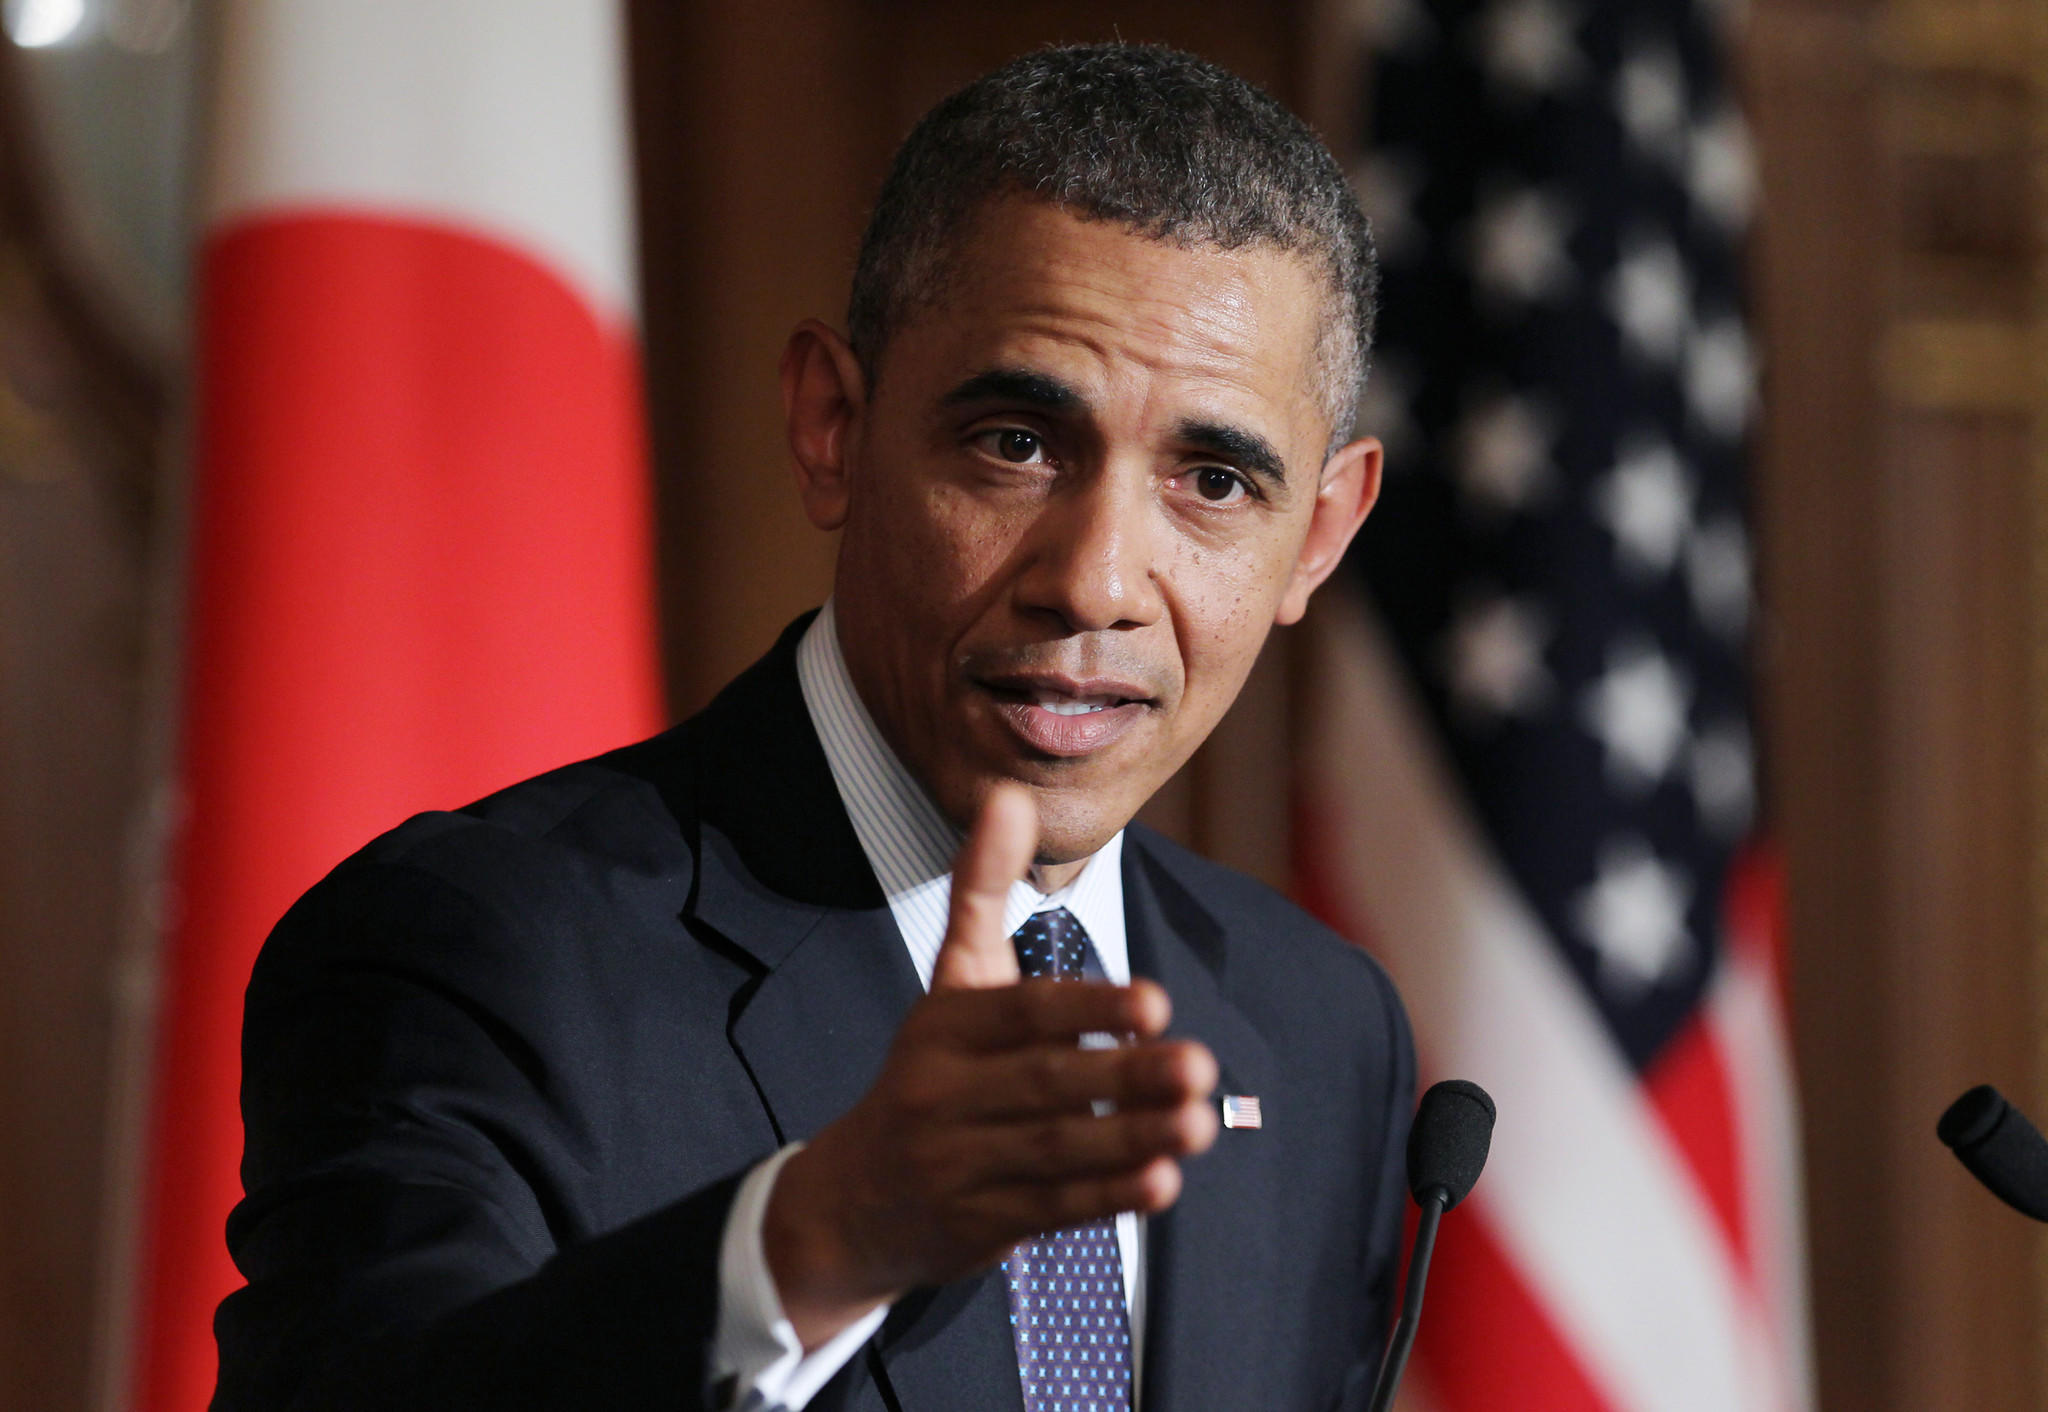 President Obama, speaking at a news conference in Japan, said the U.S. and its allies have additional sanctions against Russia ready to go.